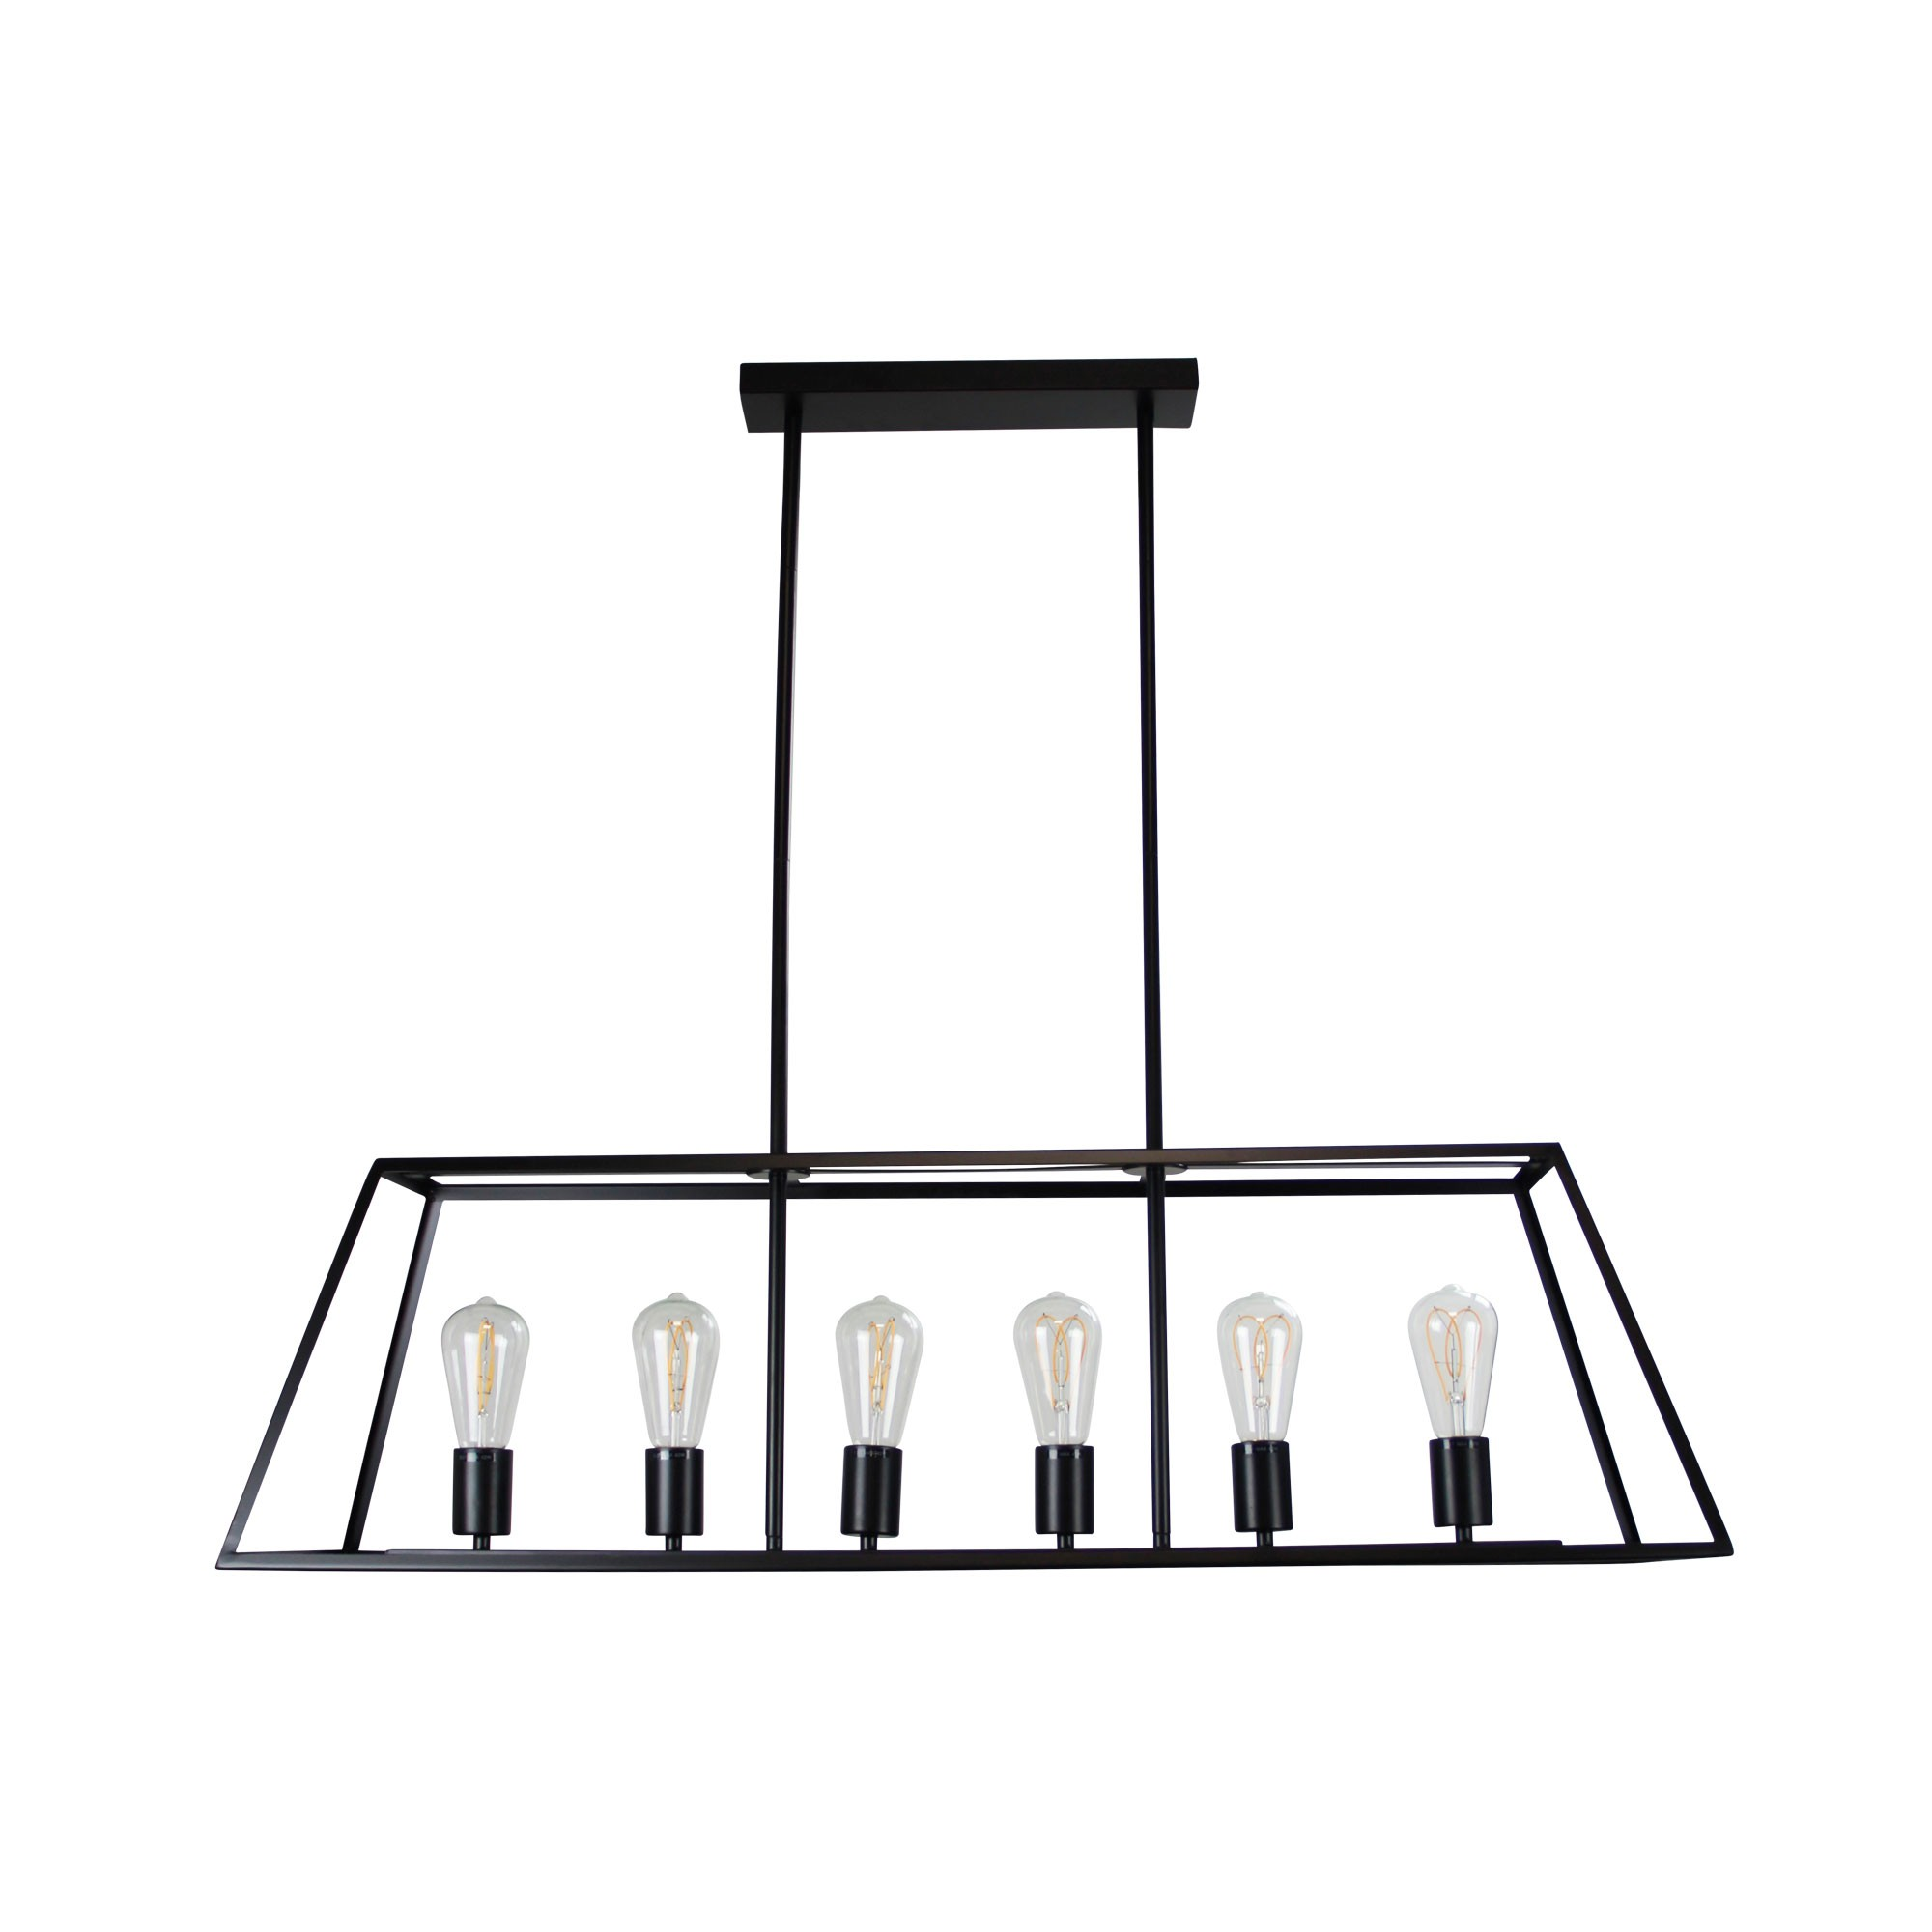 Southport Metal Urban Retro Pendant Light, 6 Light, Black